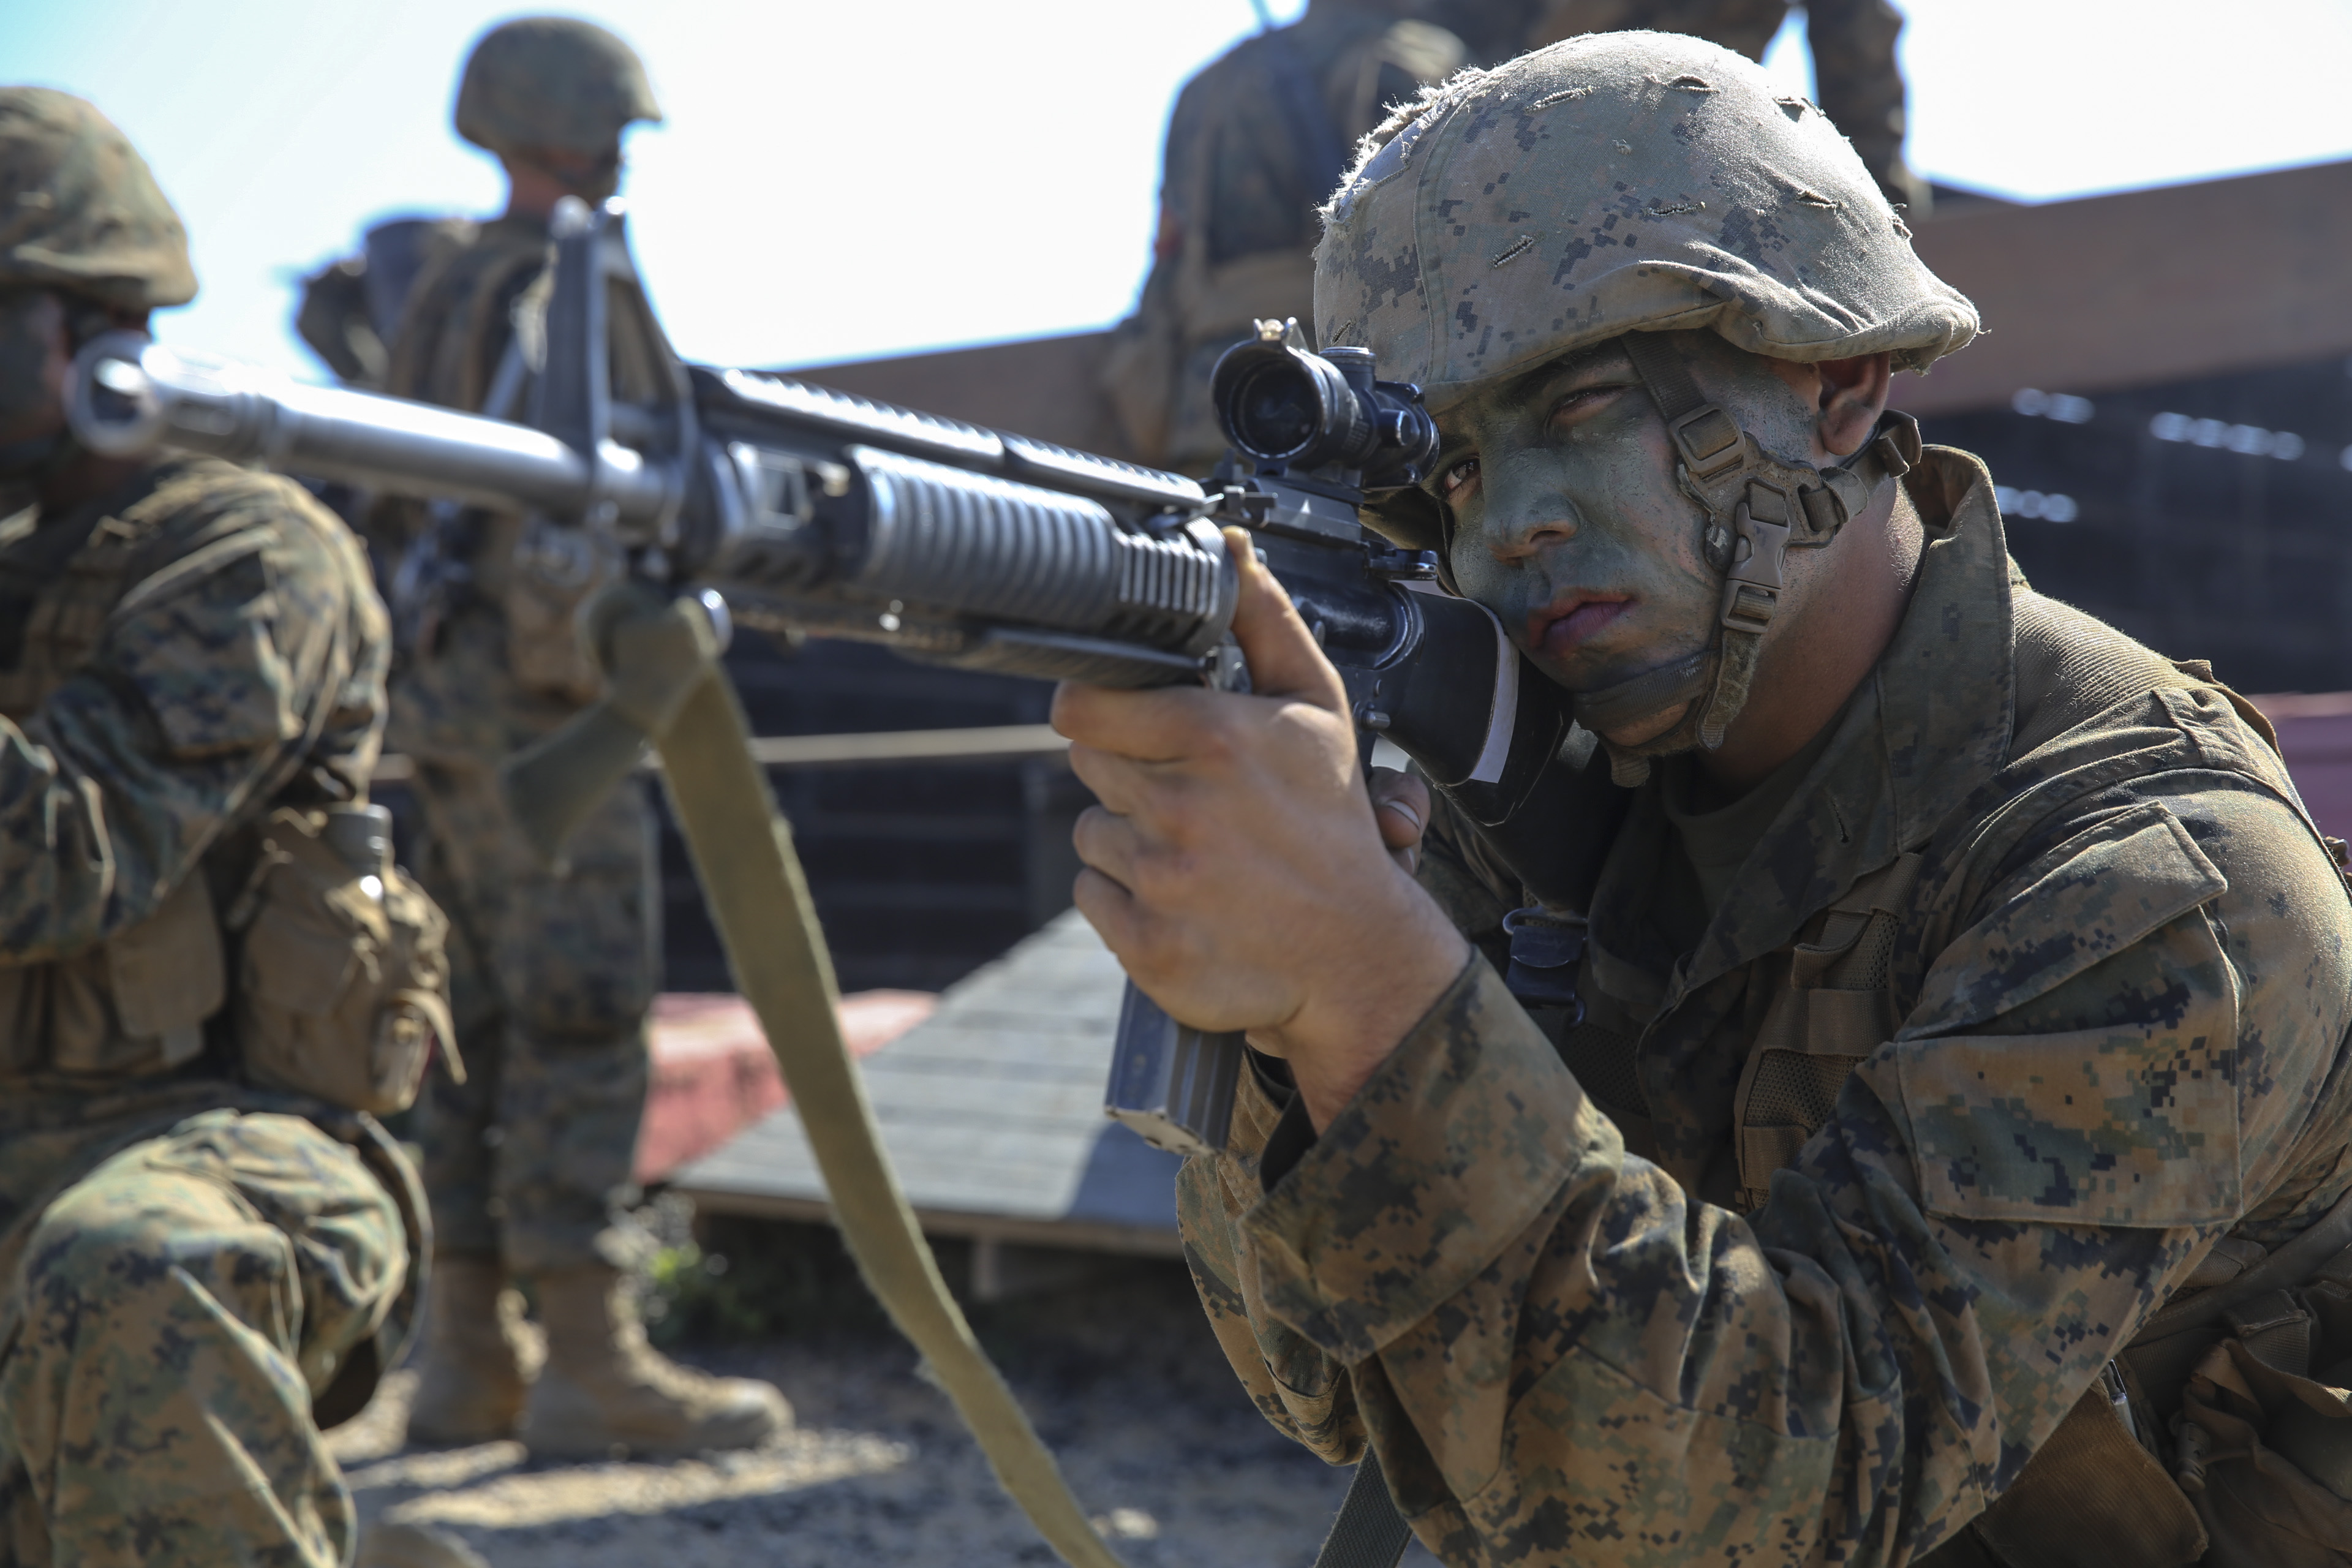 marine corps recruit training a look back essay Marine corps recruit forum ask a marine nrotc essays the naval reserve officer training corps would send a copy of the essays to your oso for them to look.